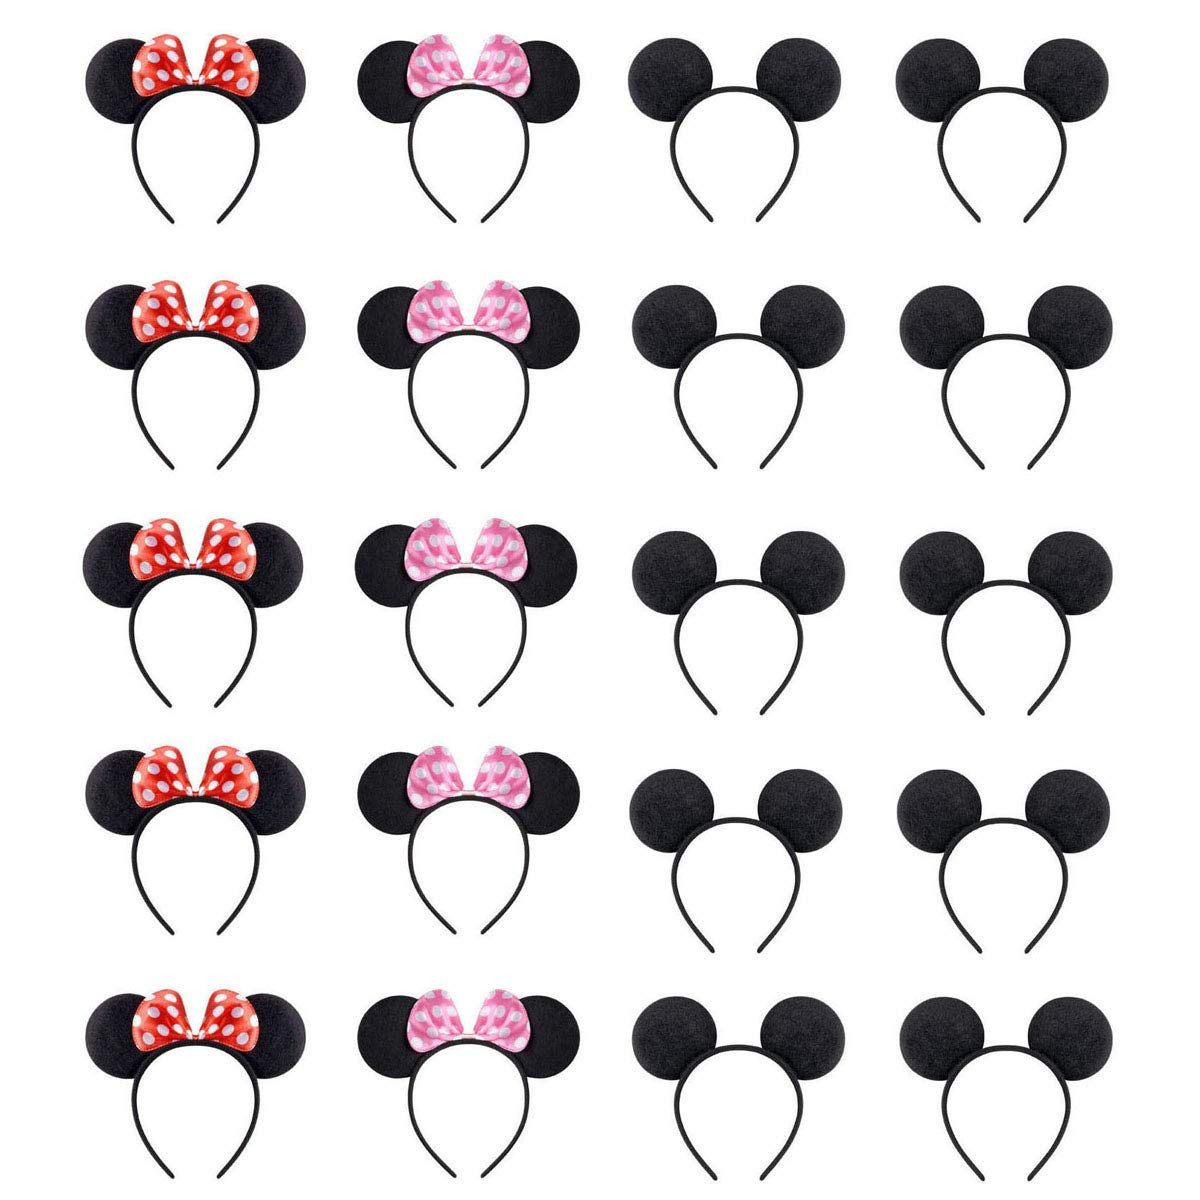 NEWTGAN 20 PCS Mouse Ears for Birthday Party Theme Park Costume Play Celebration for Boys and Girls …